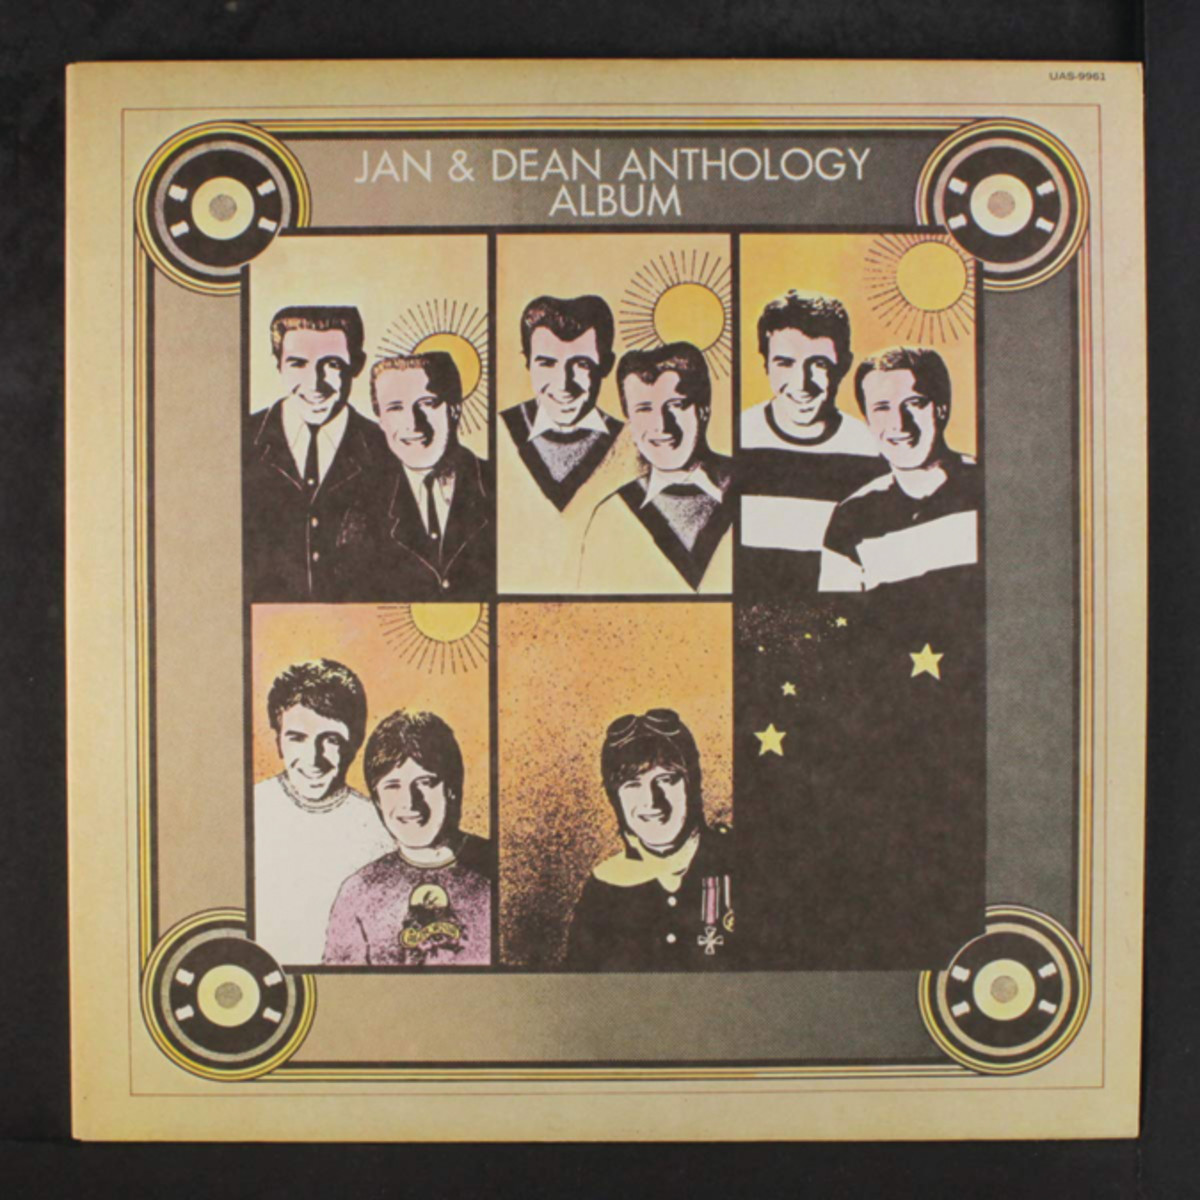 Jan and Dean — Jan and Dean Anthology Album